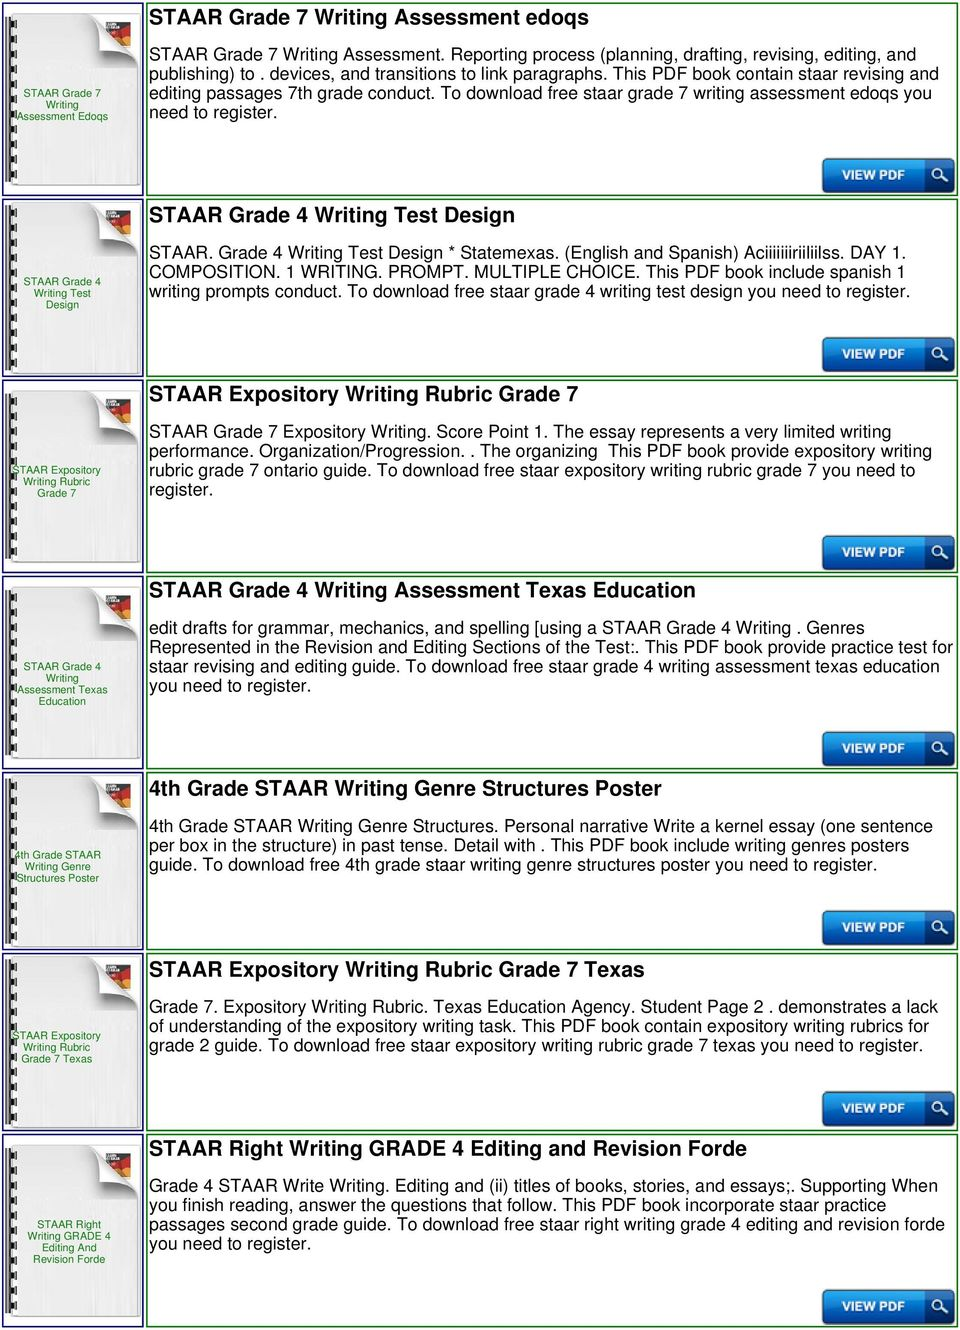 024 Research Paper Free Download Papers On Education Page 3 Stunning Full